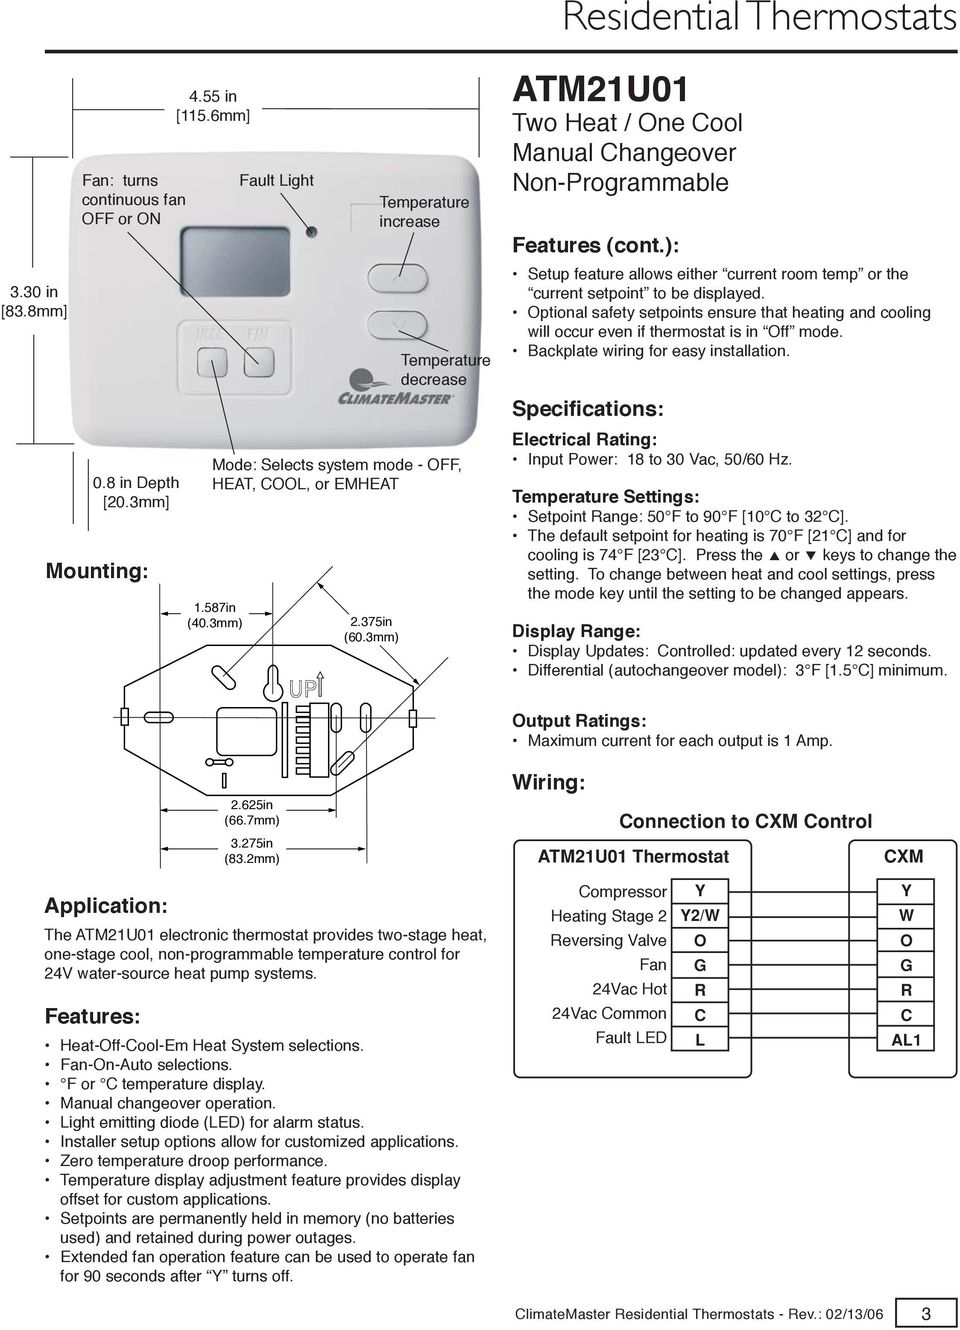 RESIDENTIAL THERMOSTATS CLIMATEMASTER - PDF on